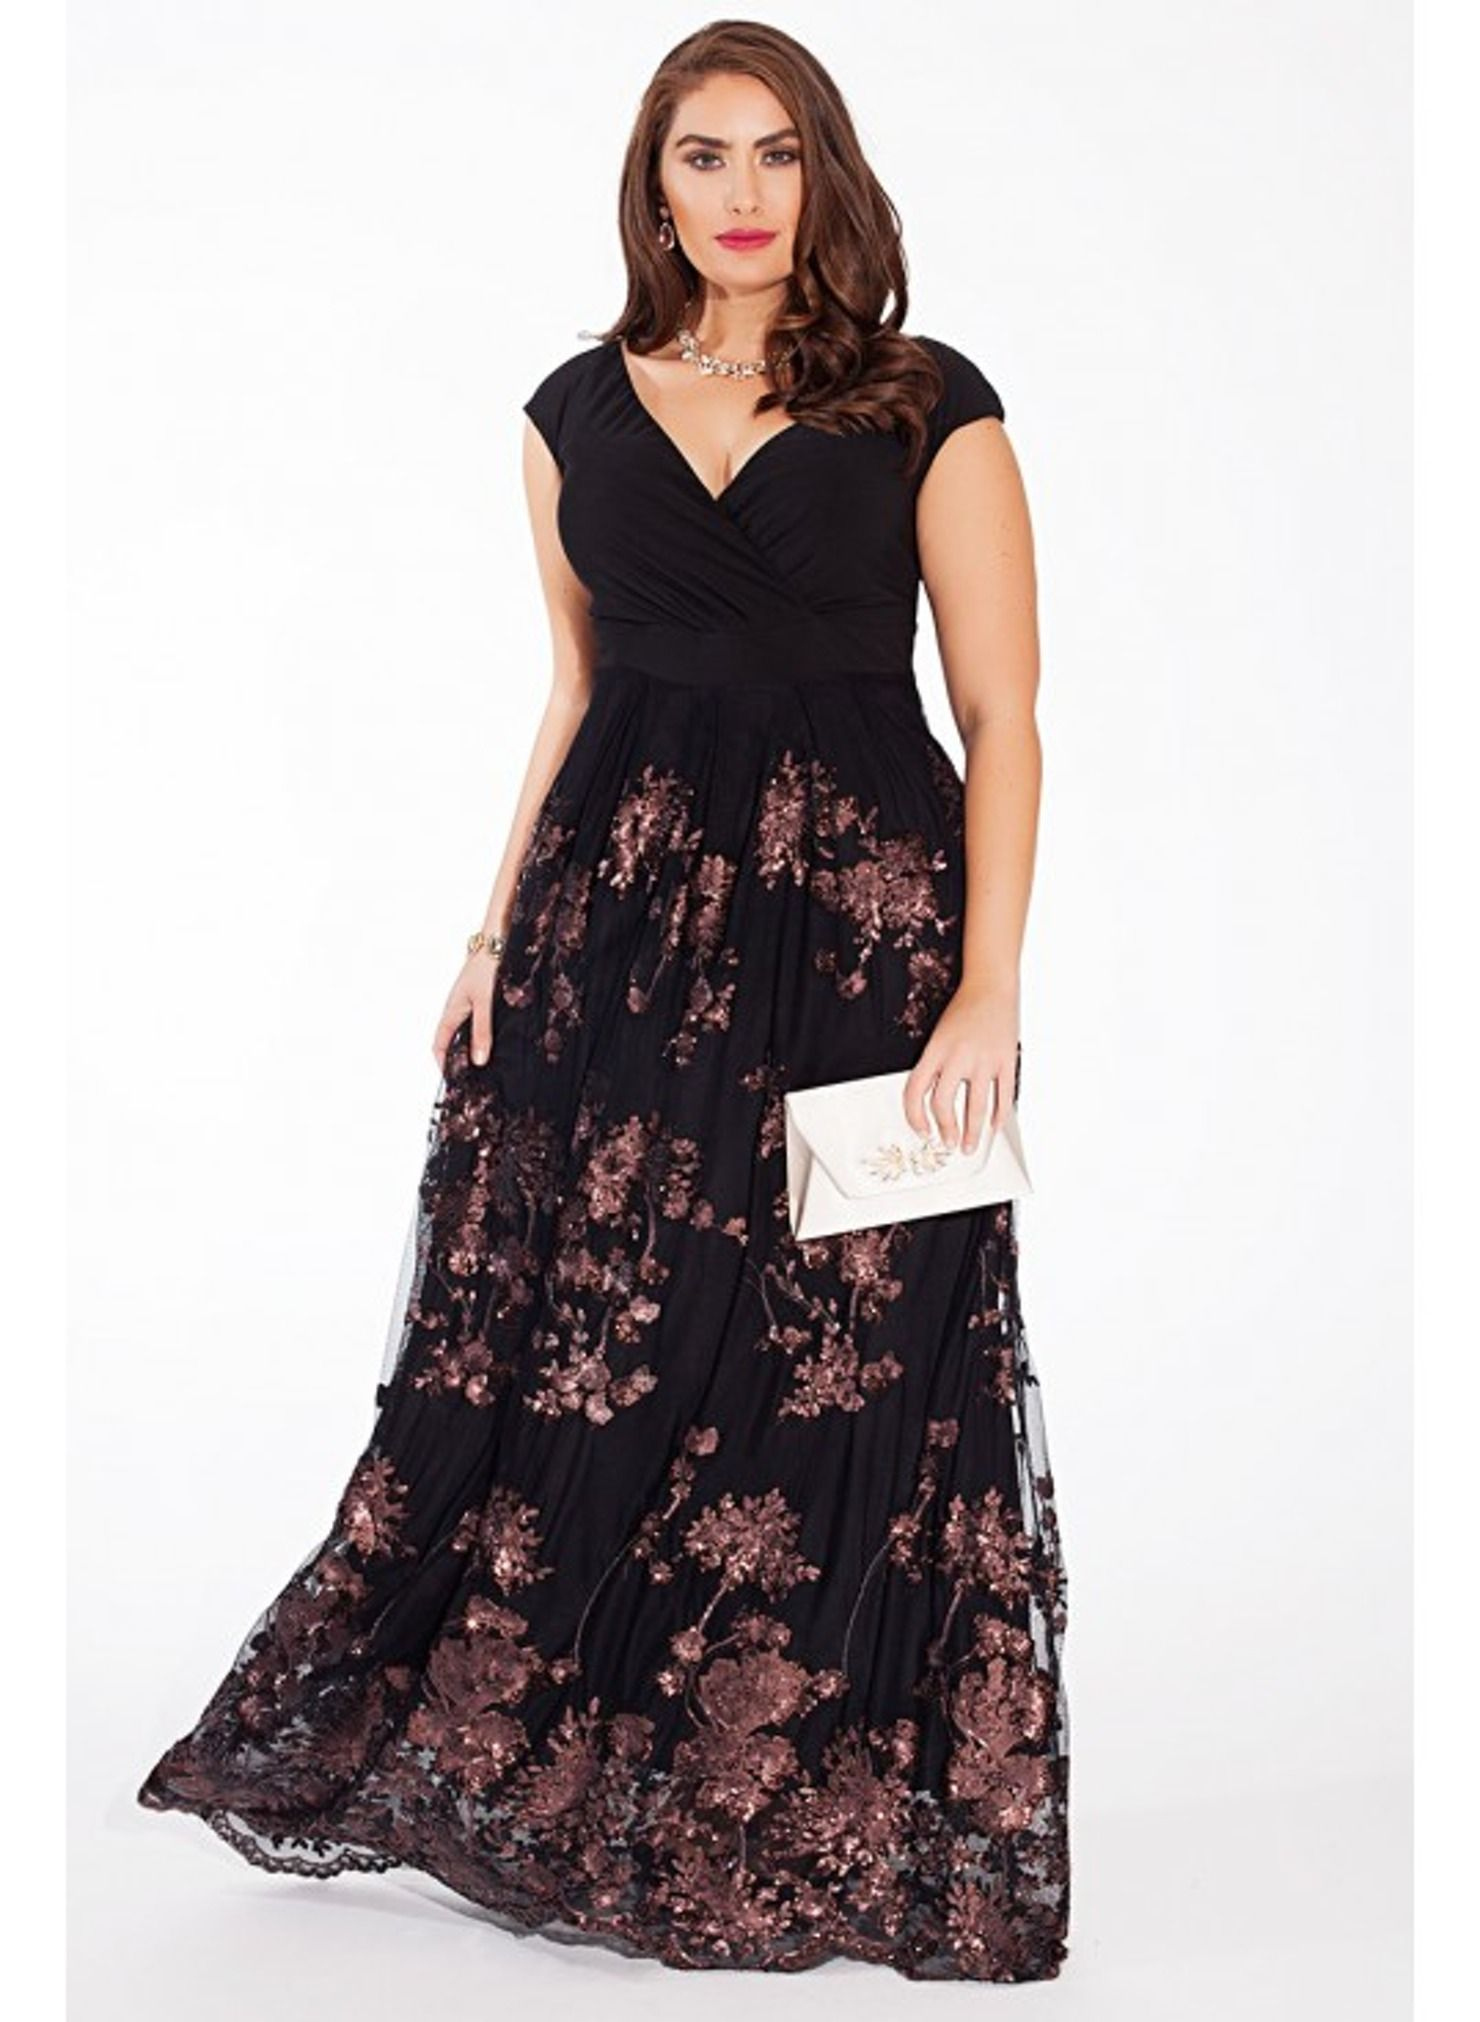 23 Plus Size Outfits To Wear To All The Weddings Plus Size Gowns Best Plus Size Dresses Plus Size Outfits [ 2022 x 1480 Pixel ]